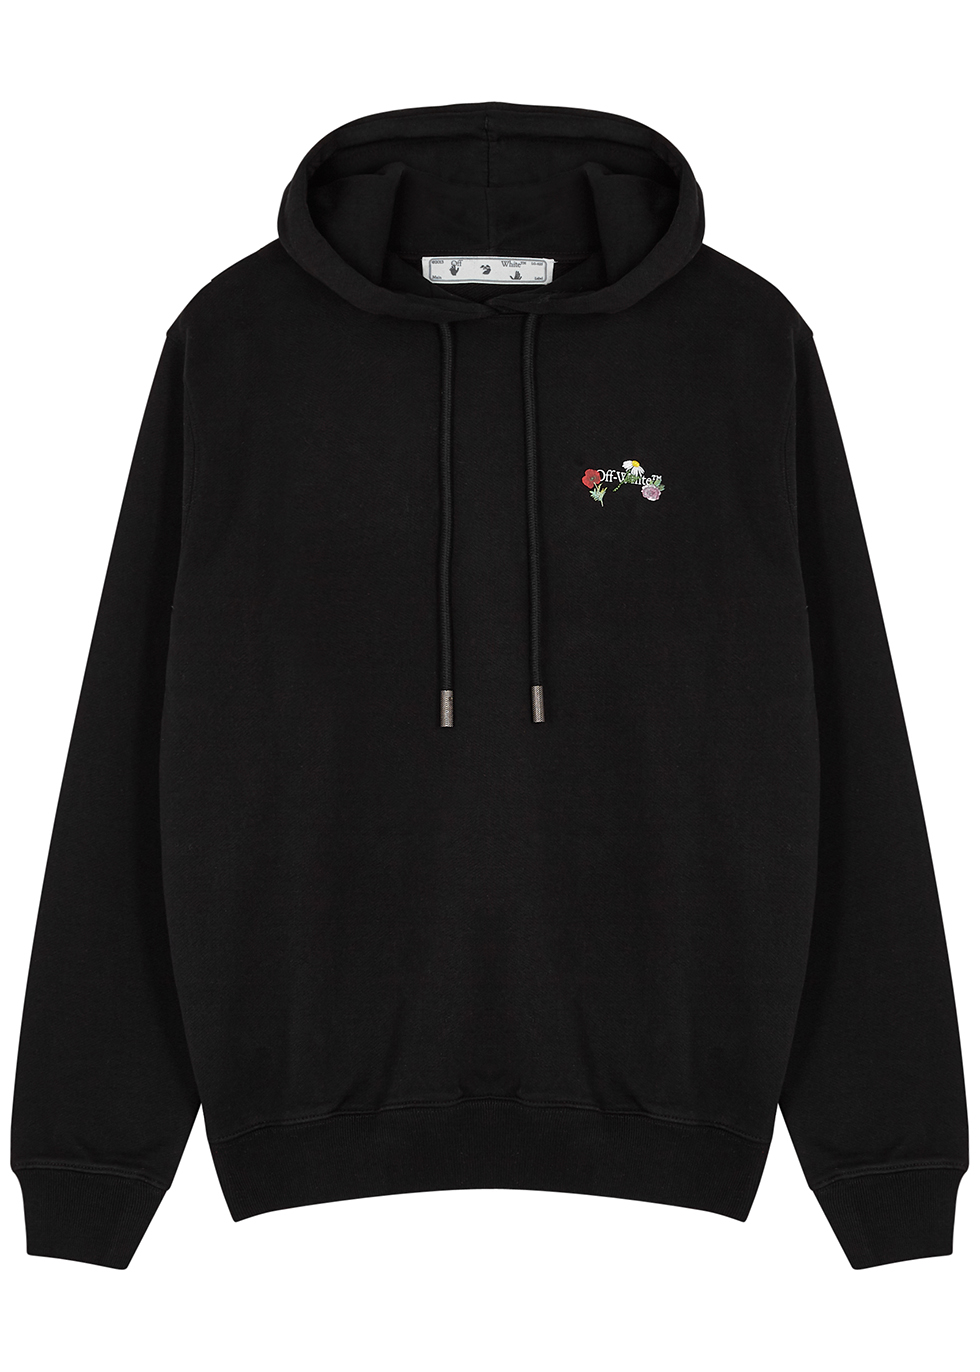 Arrows printed hooded cotton sweatshirt